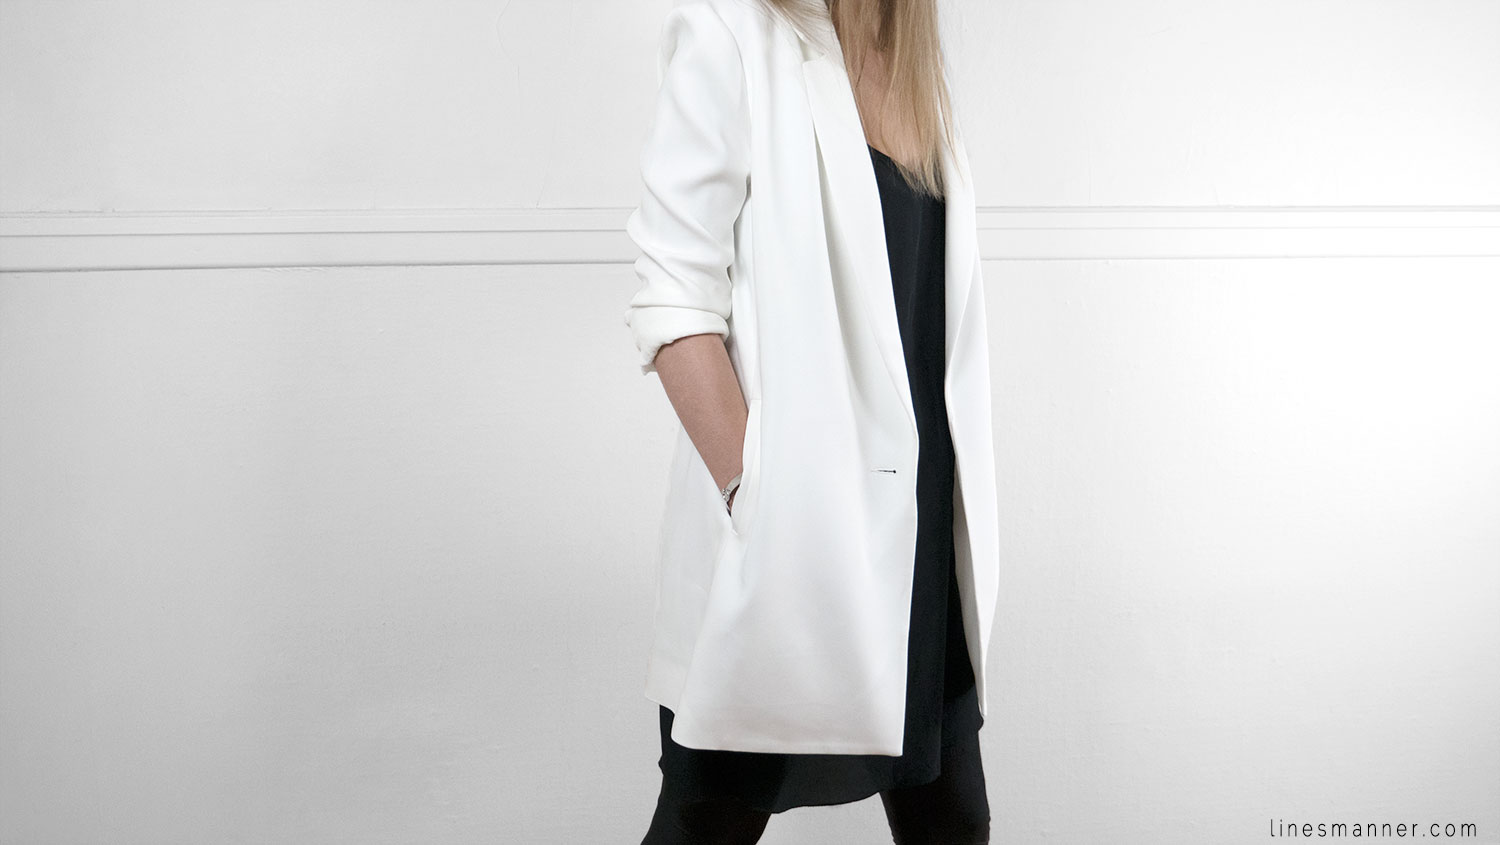 Lines-Manner-Minimal-White-Blazer-Quality-Essential-Brightly-Fresh-Sophistication-Staple-Classics-3